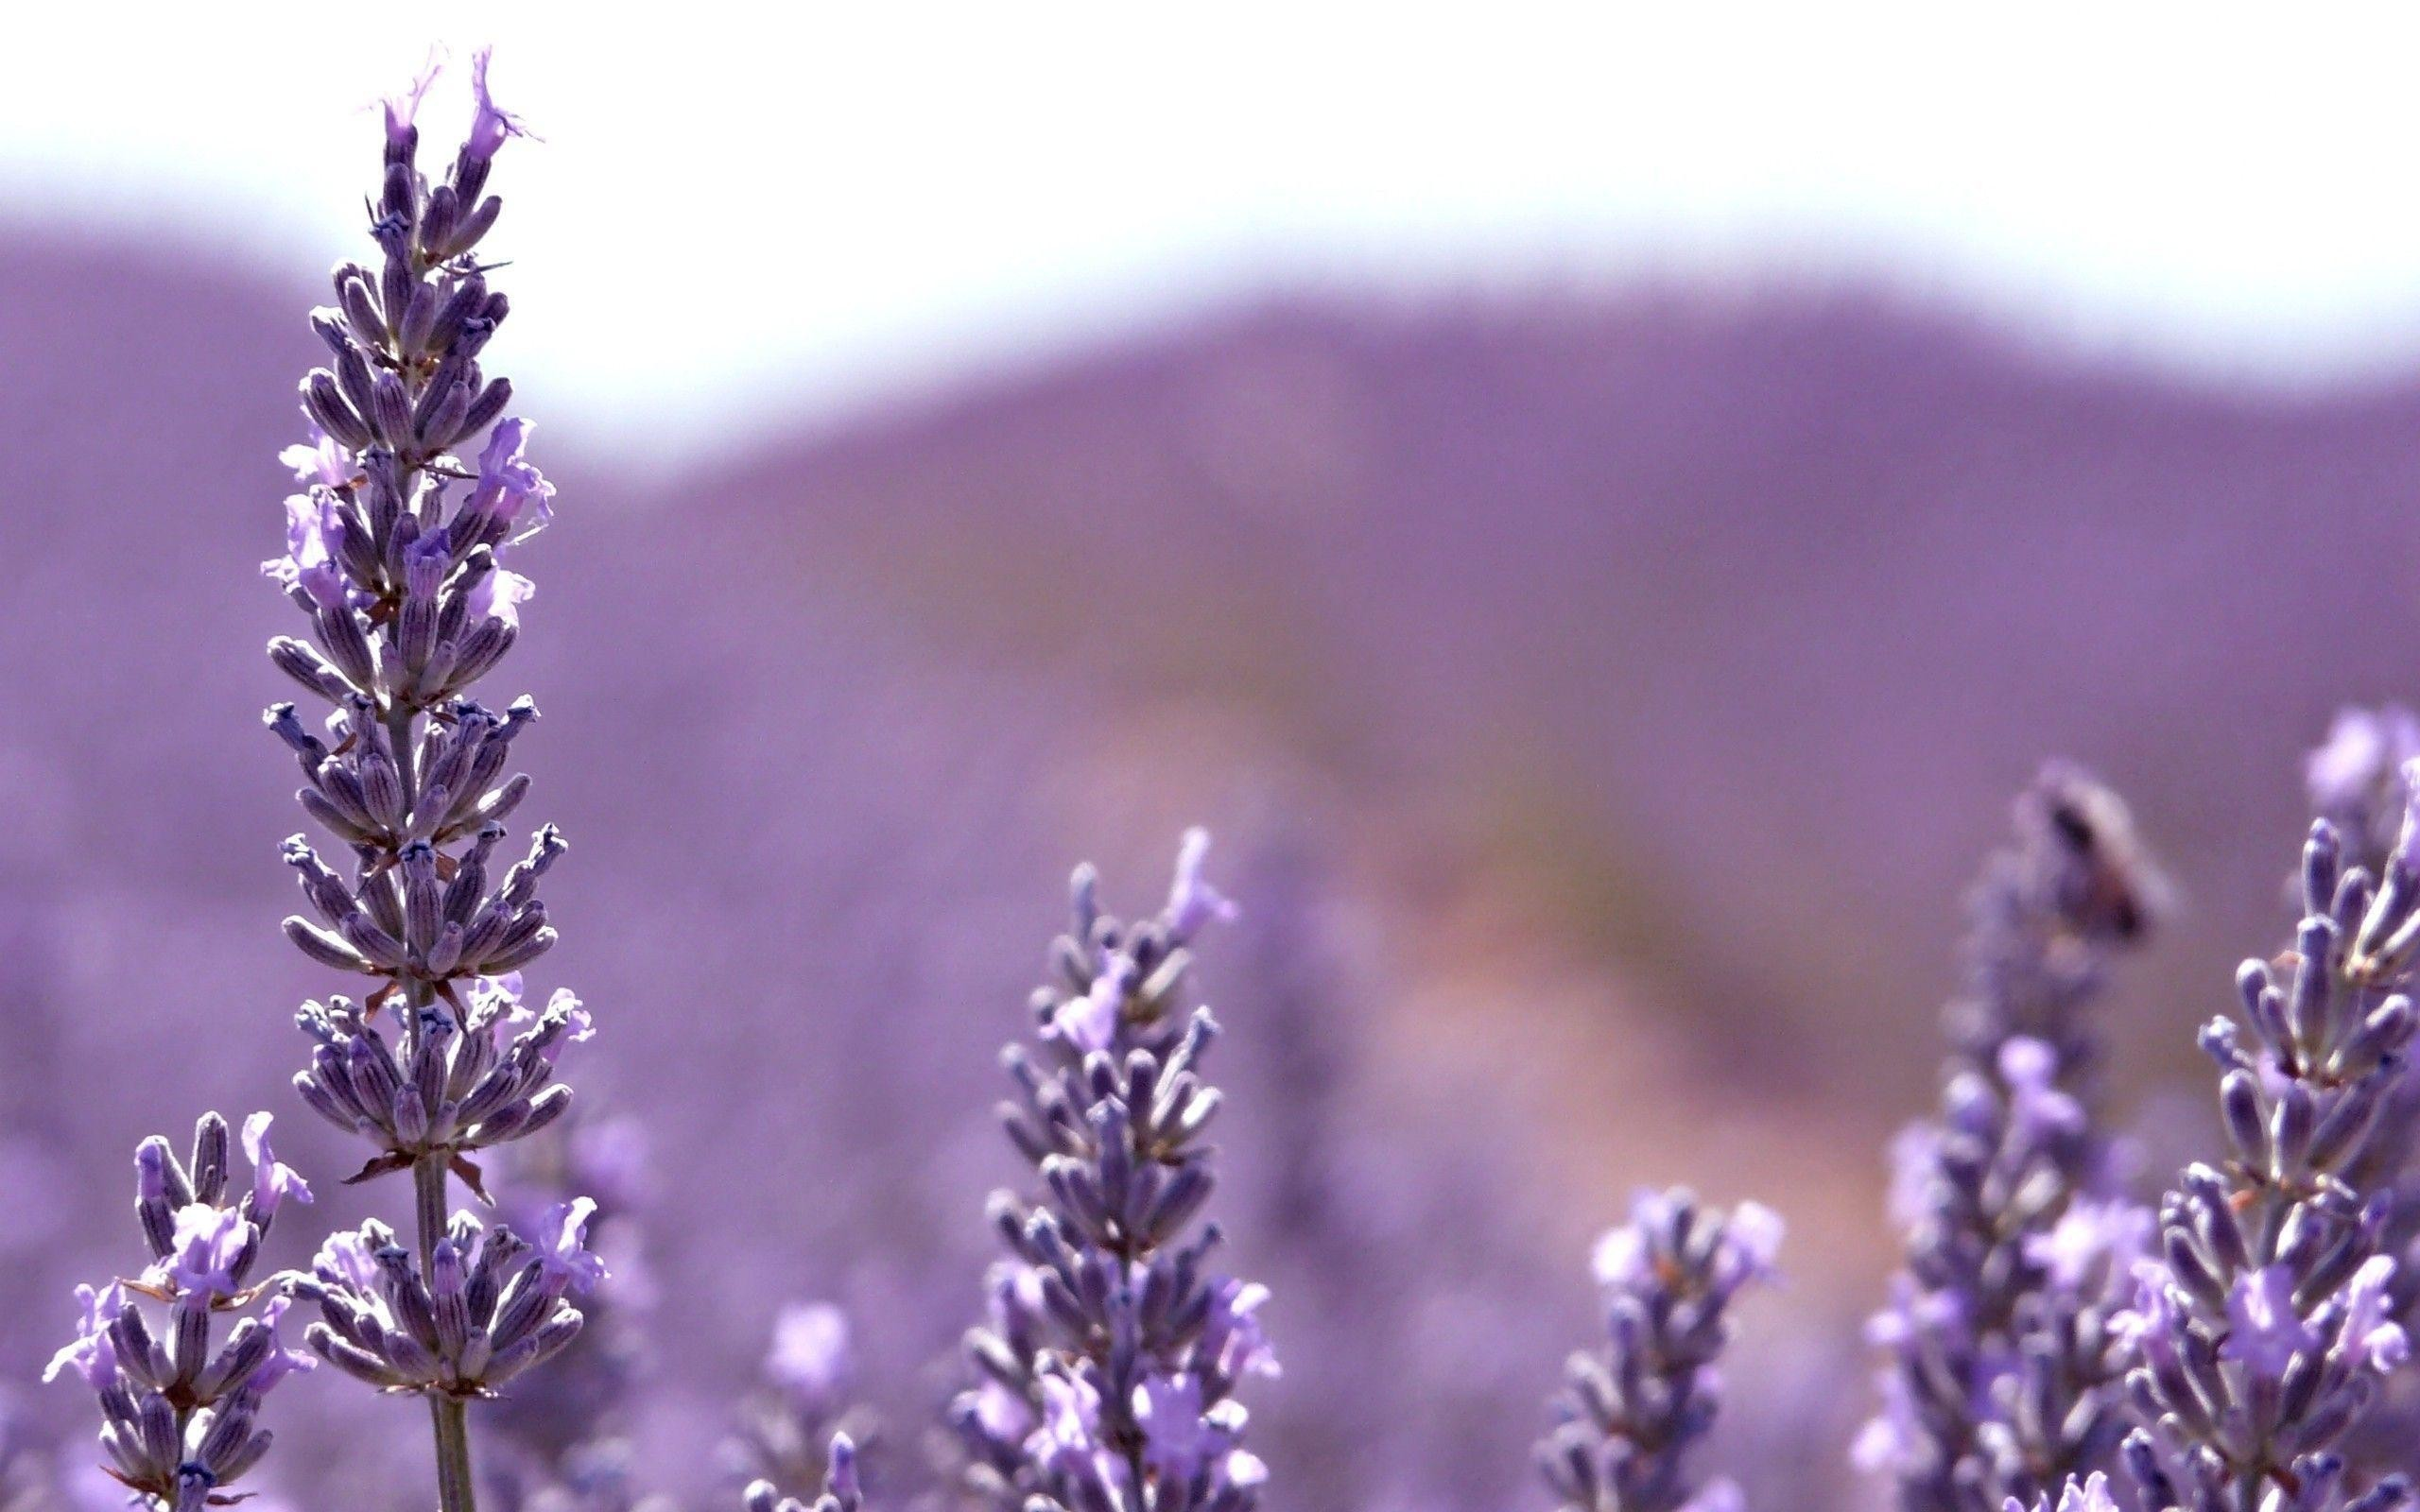 2560x1600 Lavender Flower Background Hd Images 3 HD Wallpapers | aduphoto.